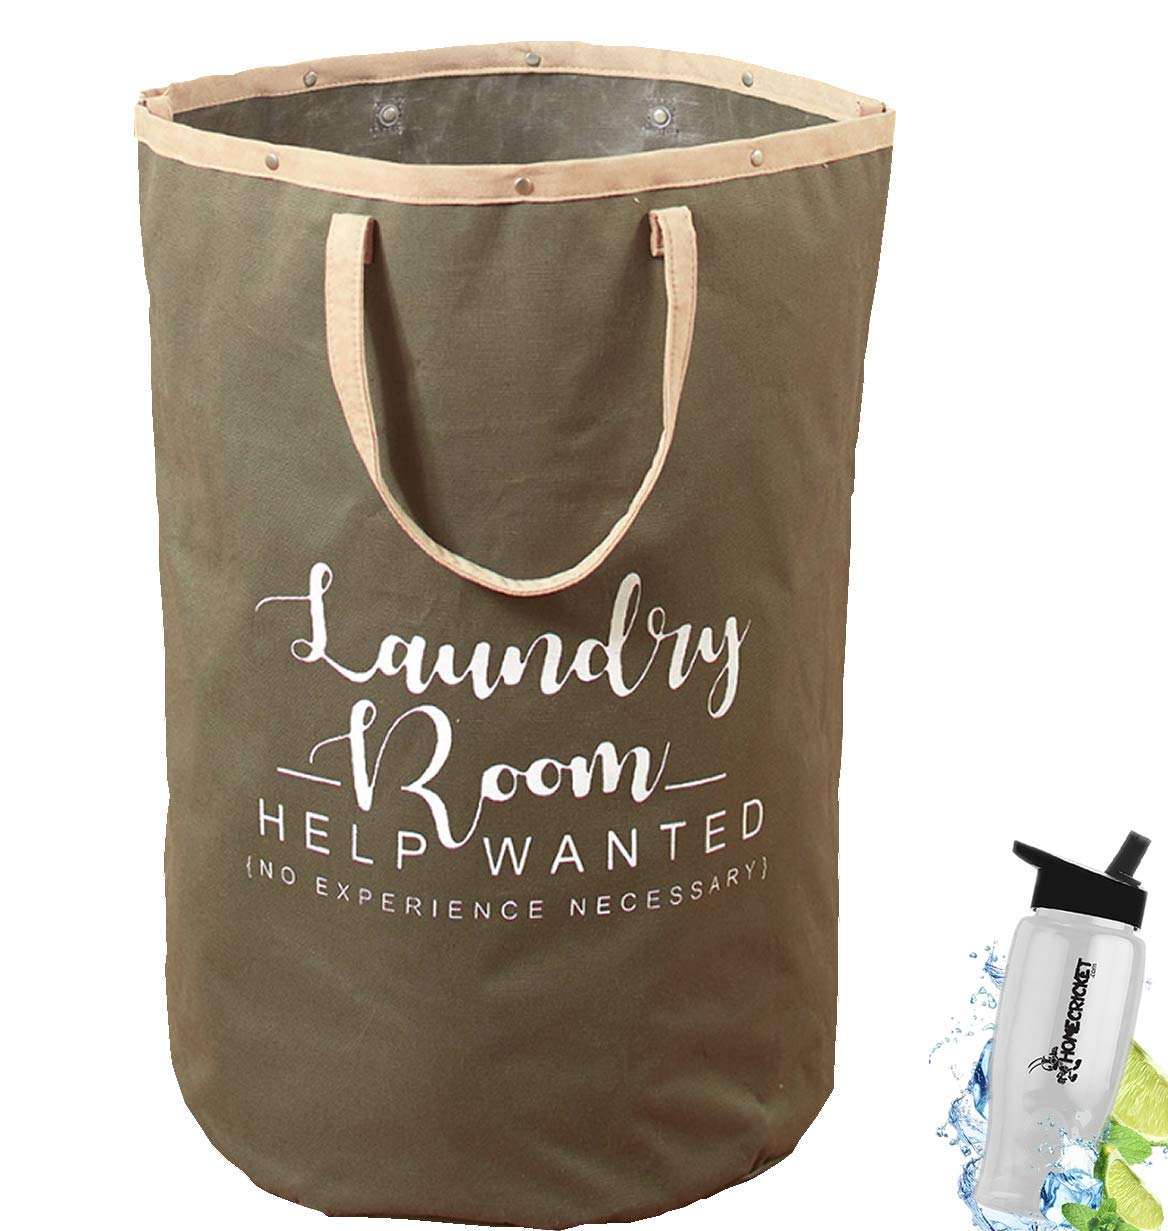 Gift Included- Jumbo Large Laundry Tote Bag With Handles For Laundry Room or Storage Sage + FREE Bonus Water Bottle by Home Cricket